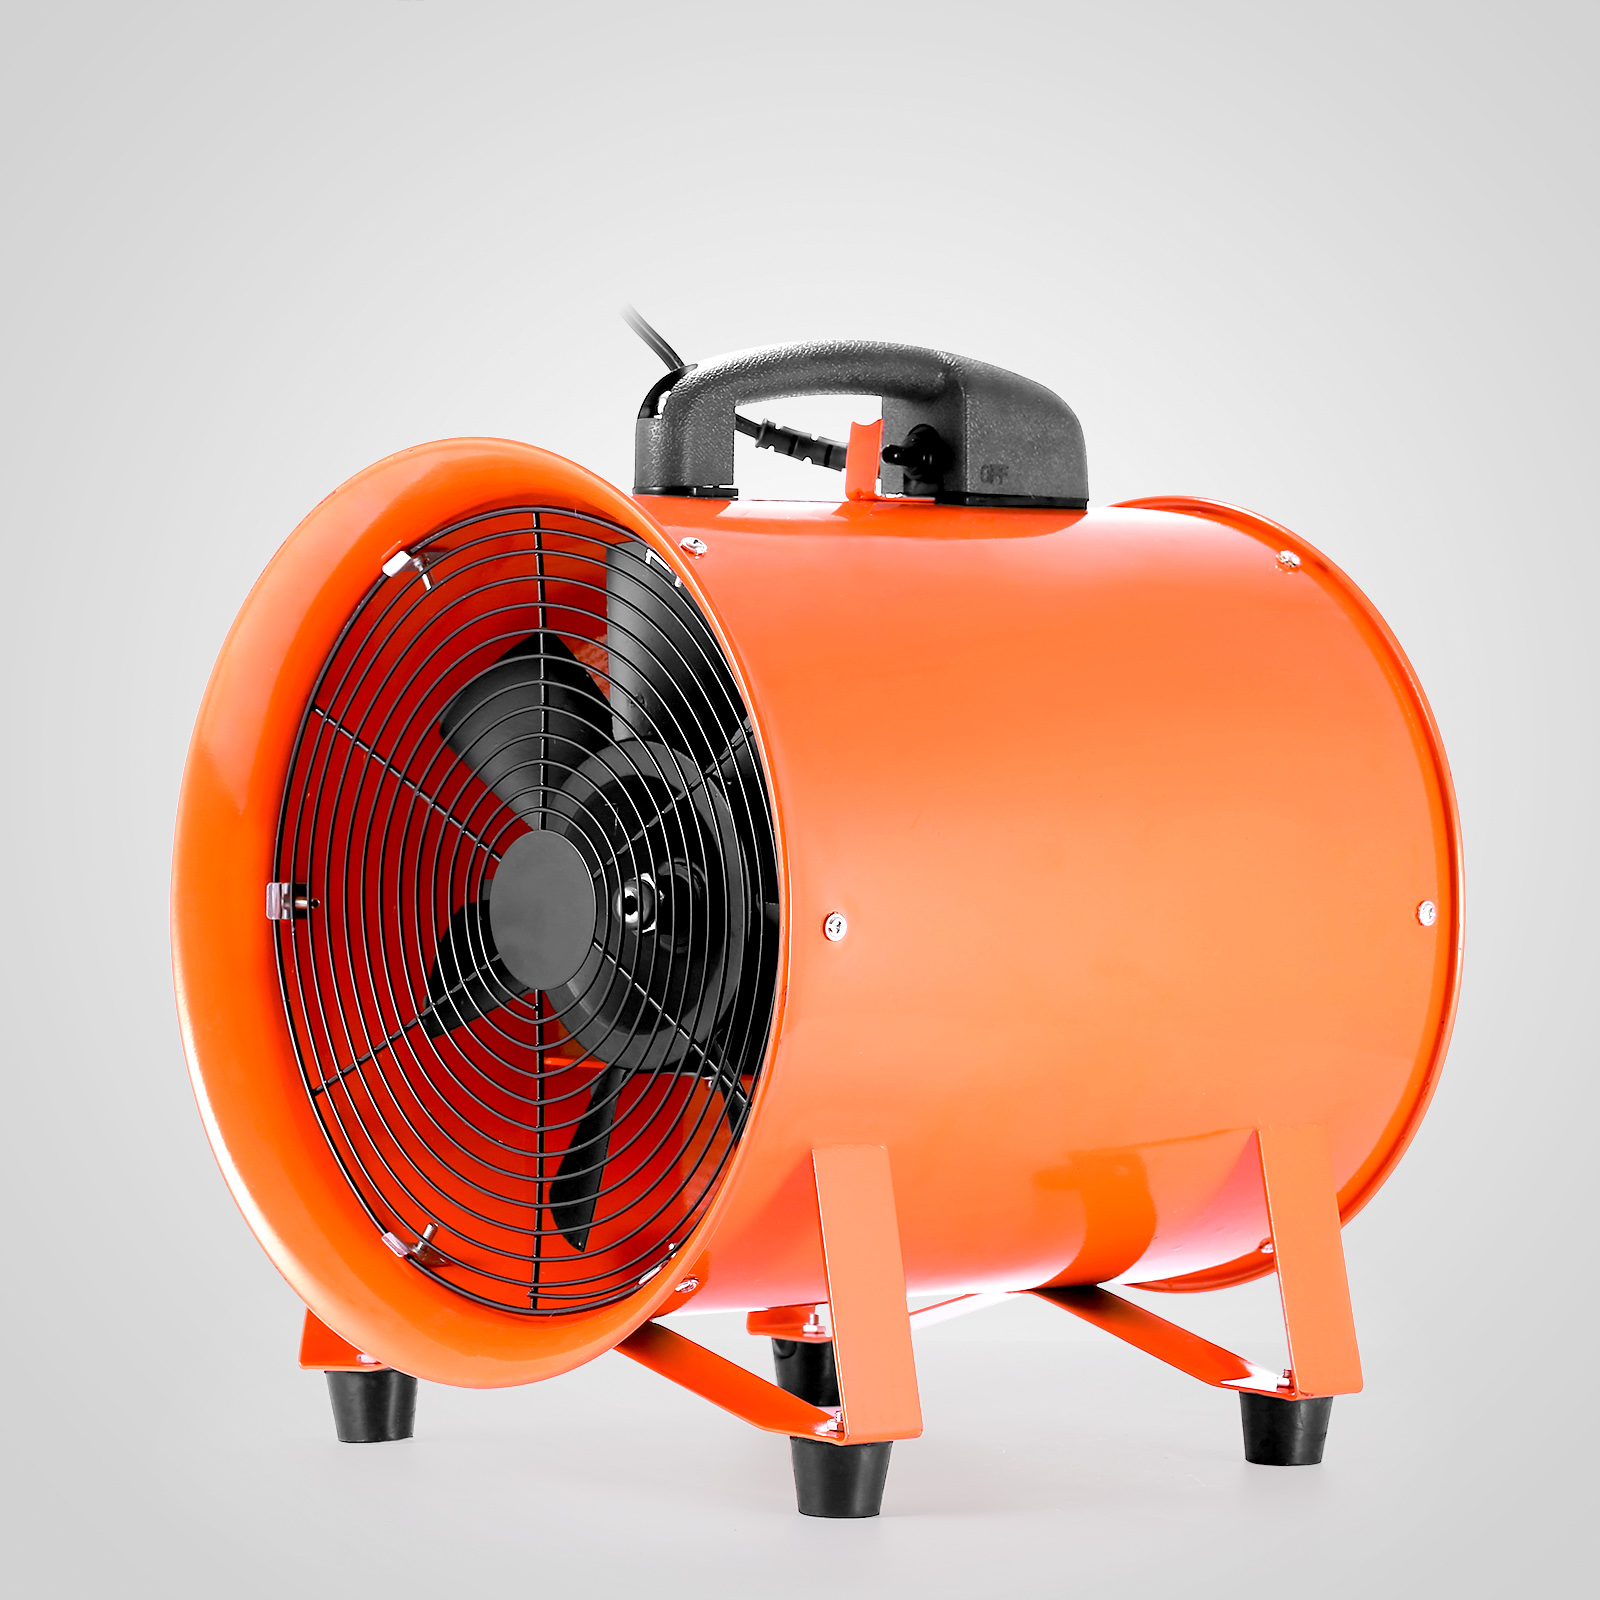 Large Fans Or Blowers : Mm industrial fan ventilator fume extractor blower